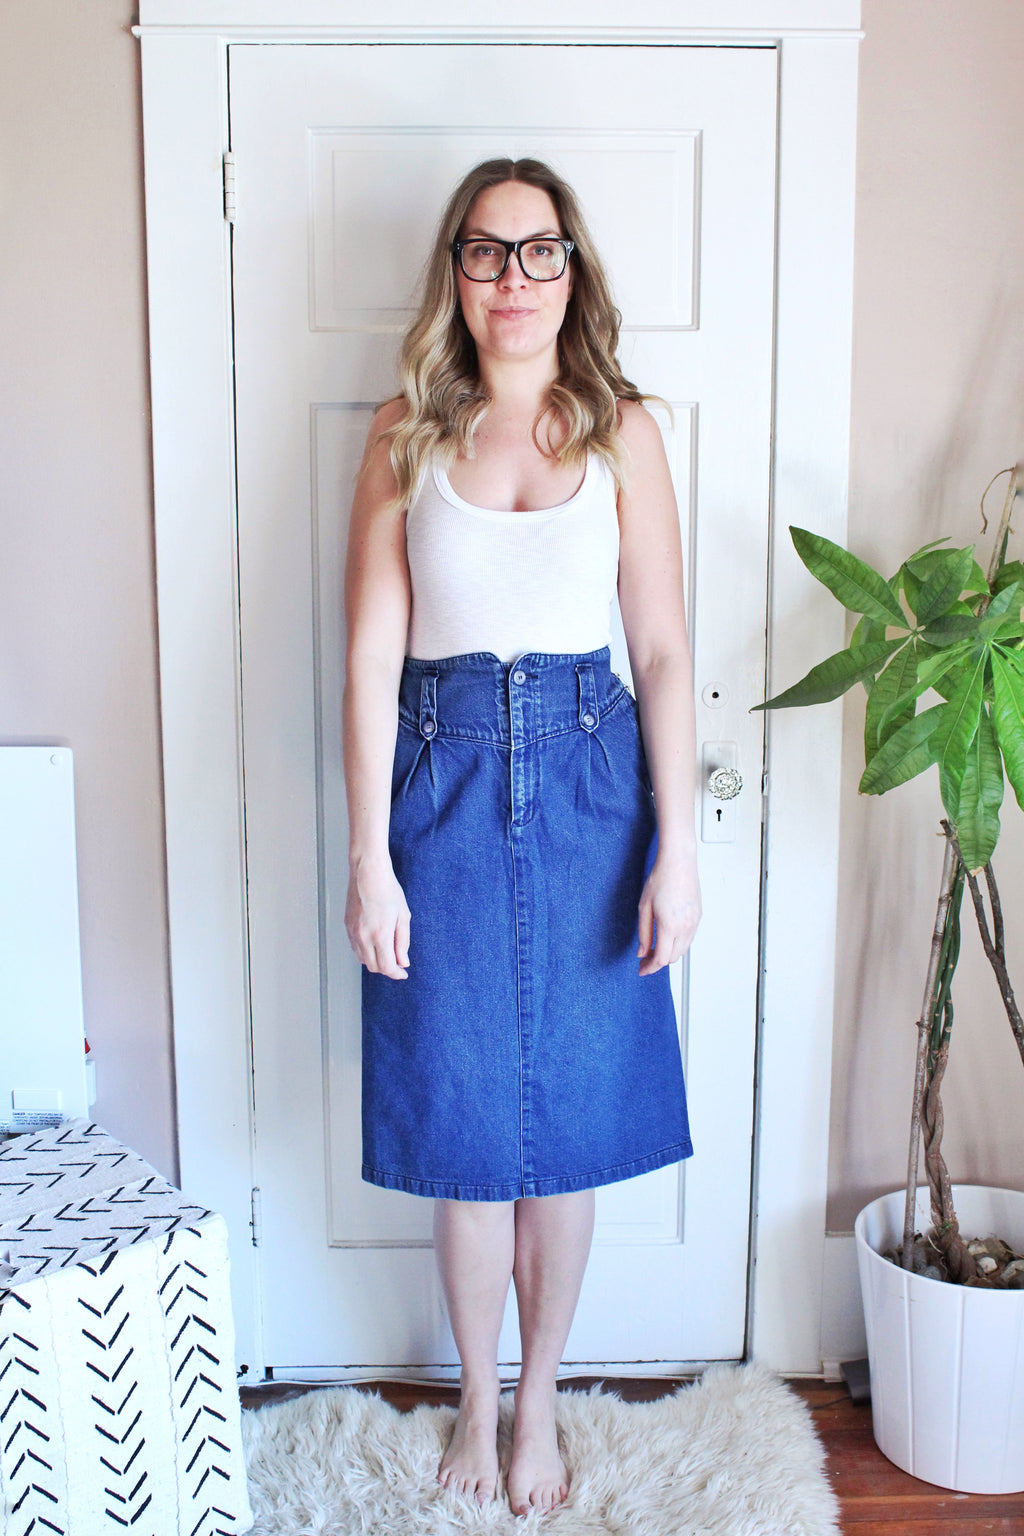 elizabeth o. vintage - HIgh Waisted Denim Skirt